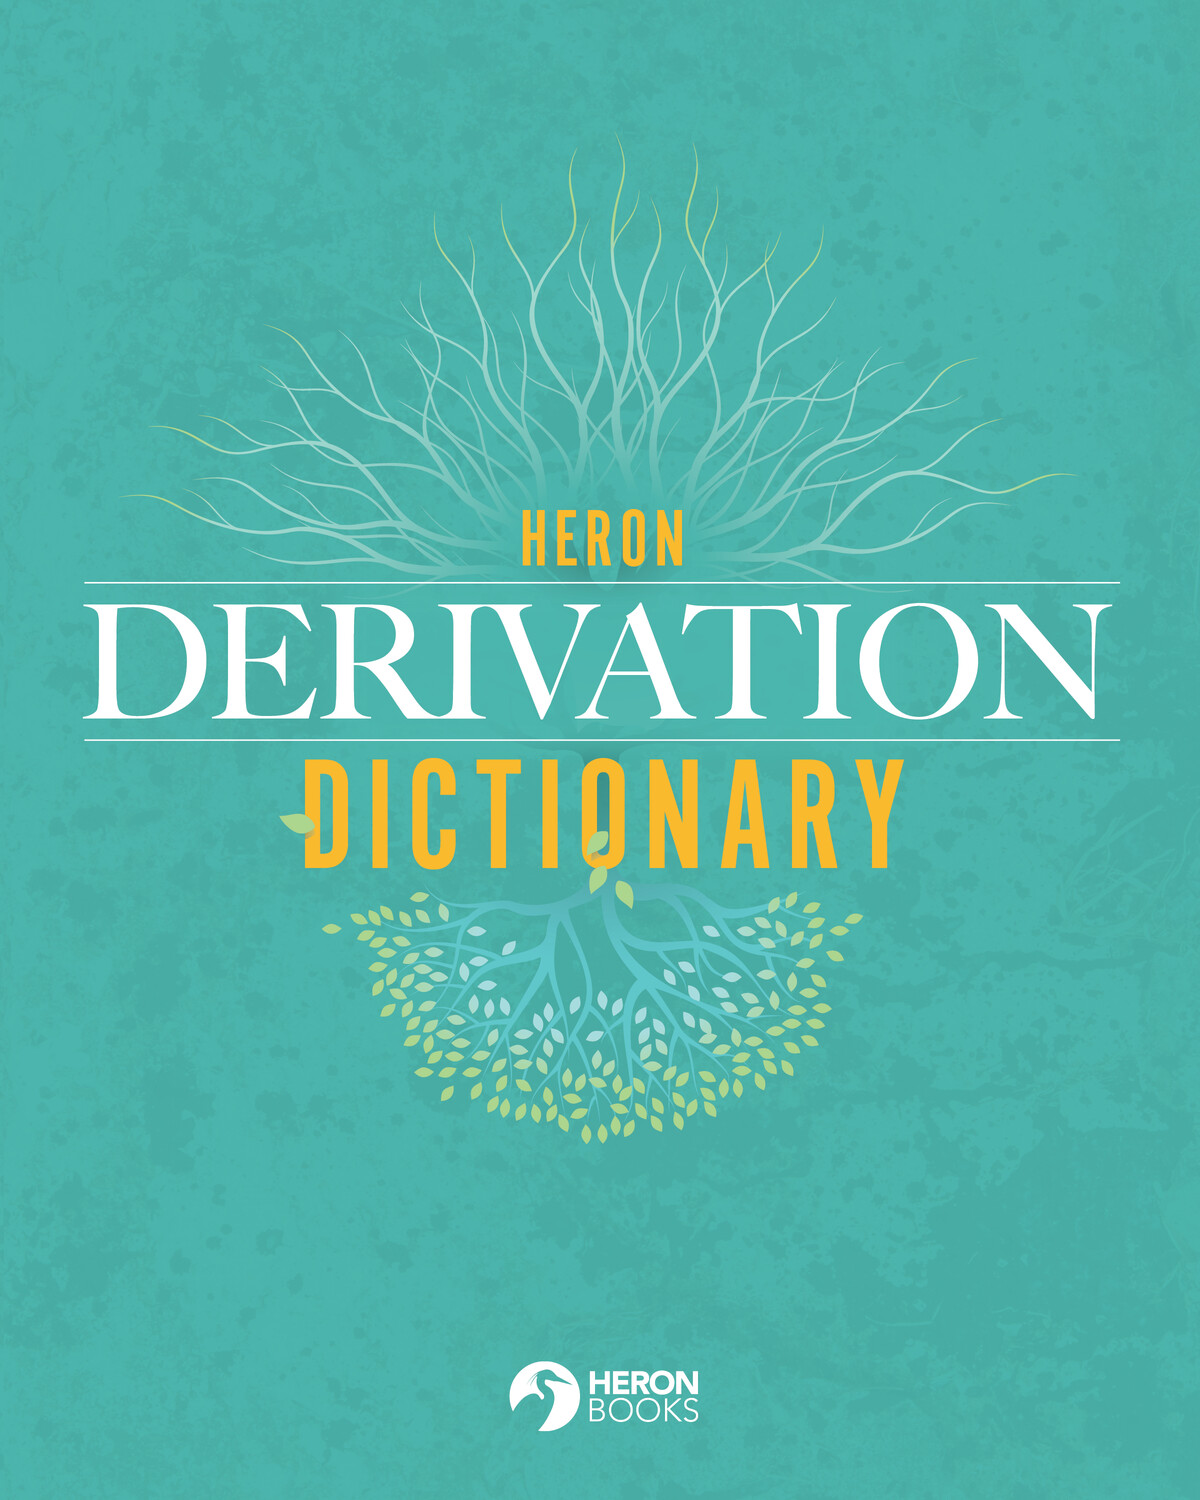 Heron Derivation Dictionary - 5th Edition